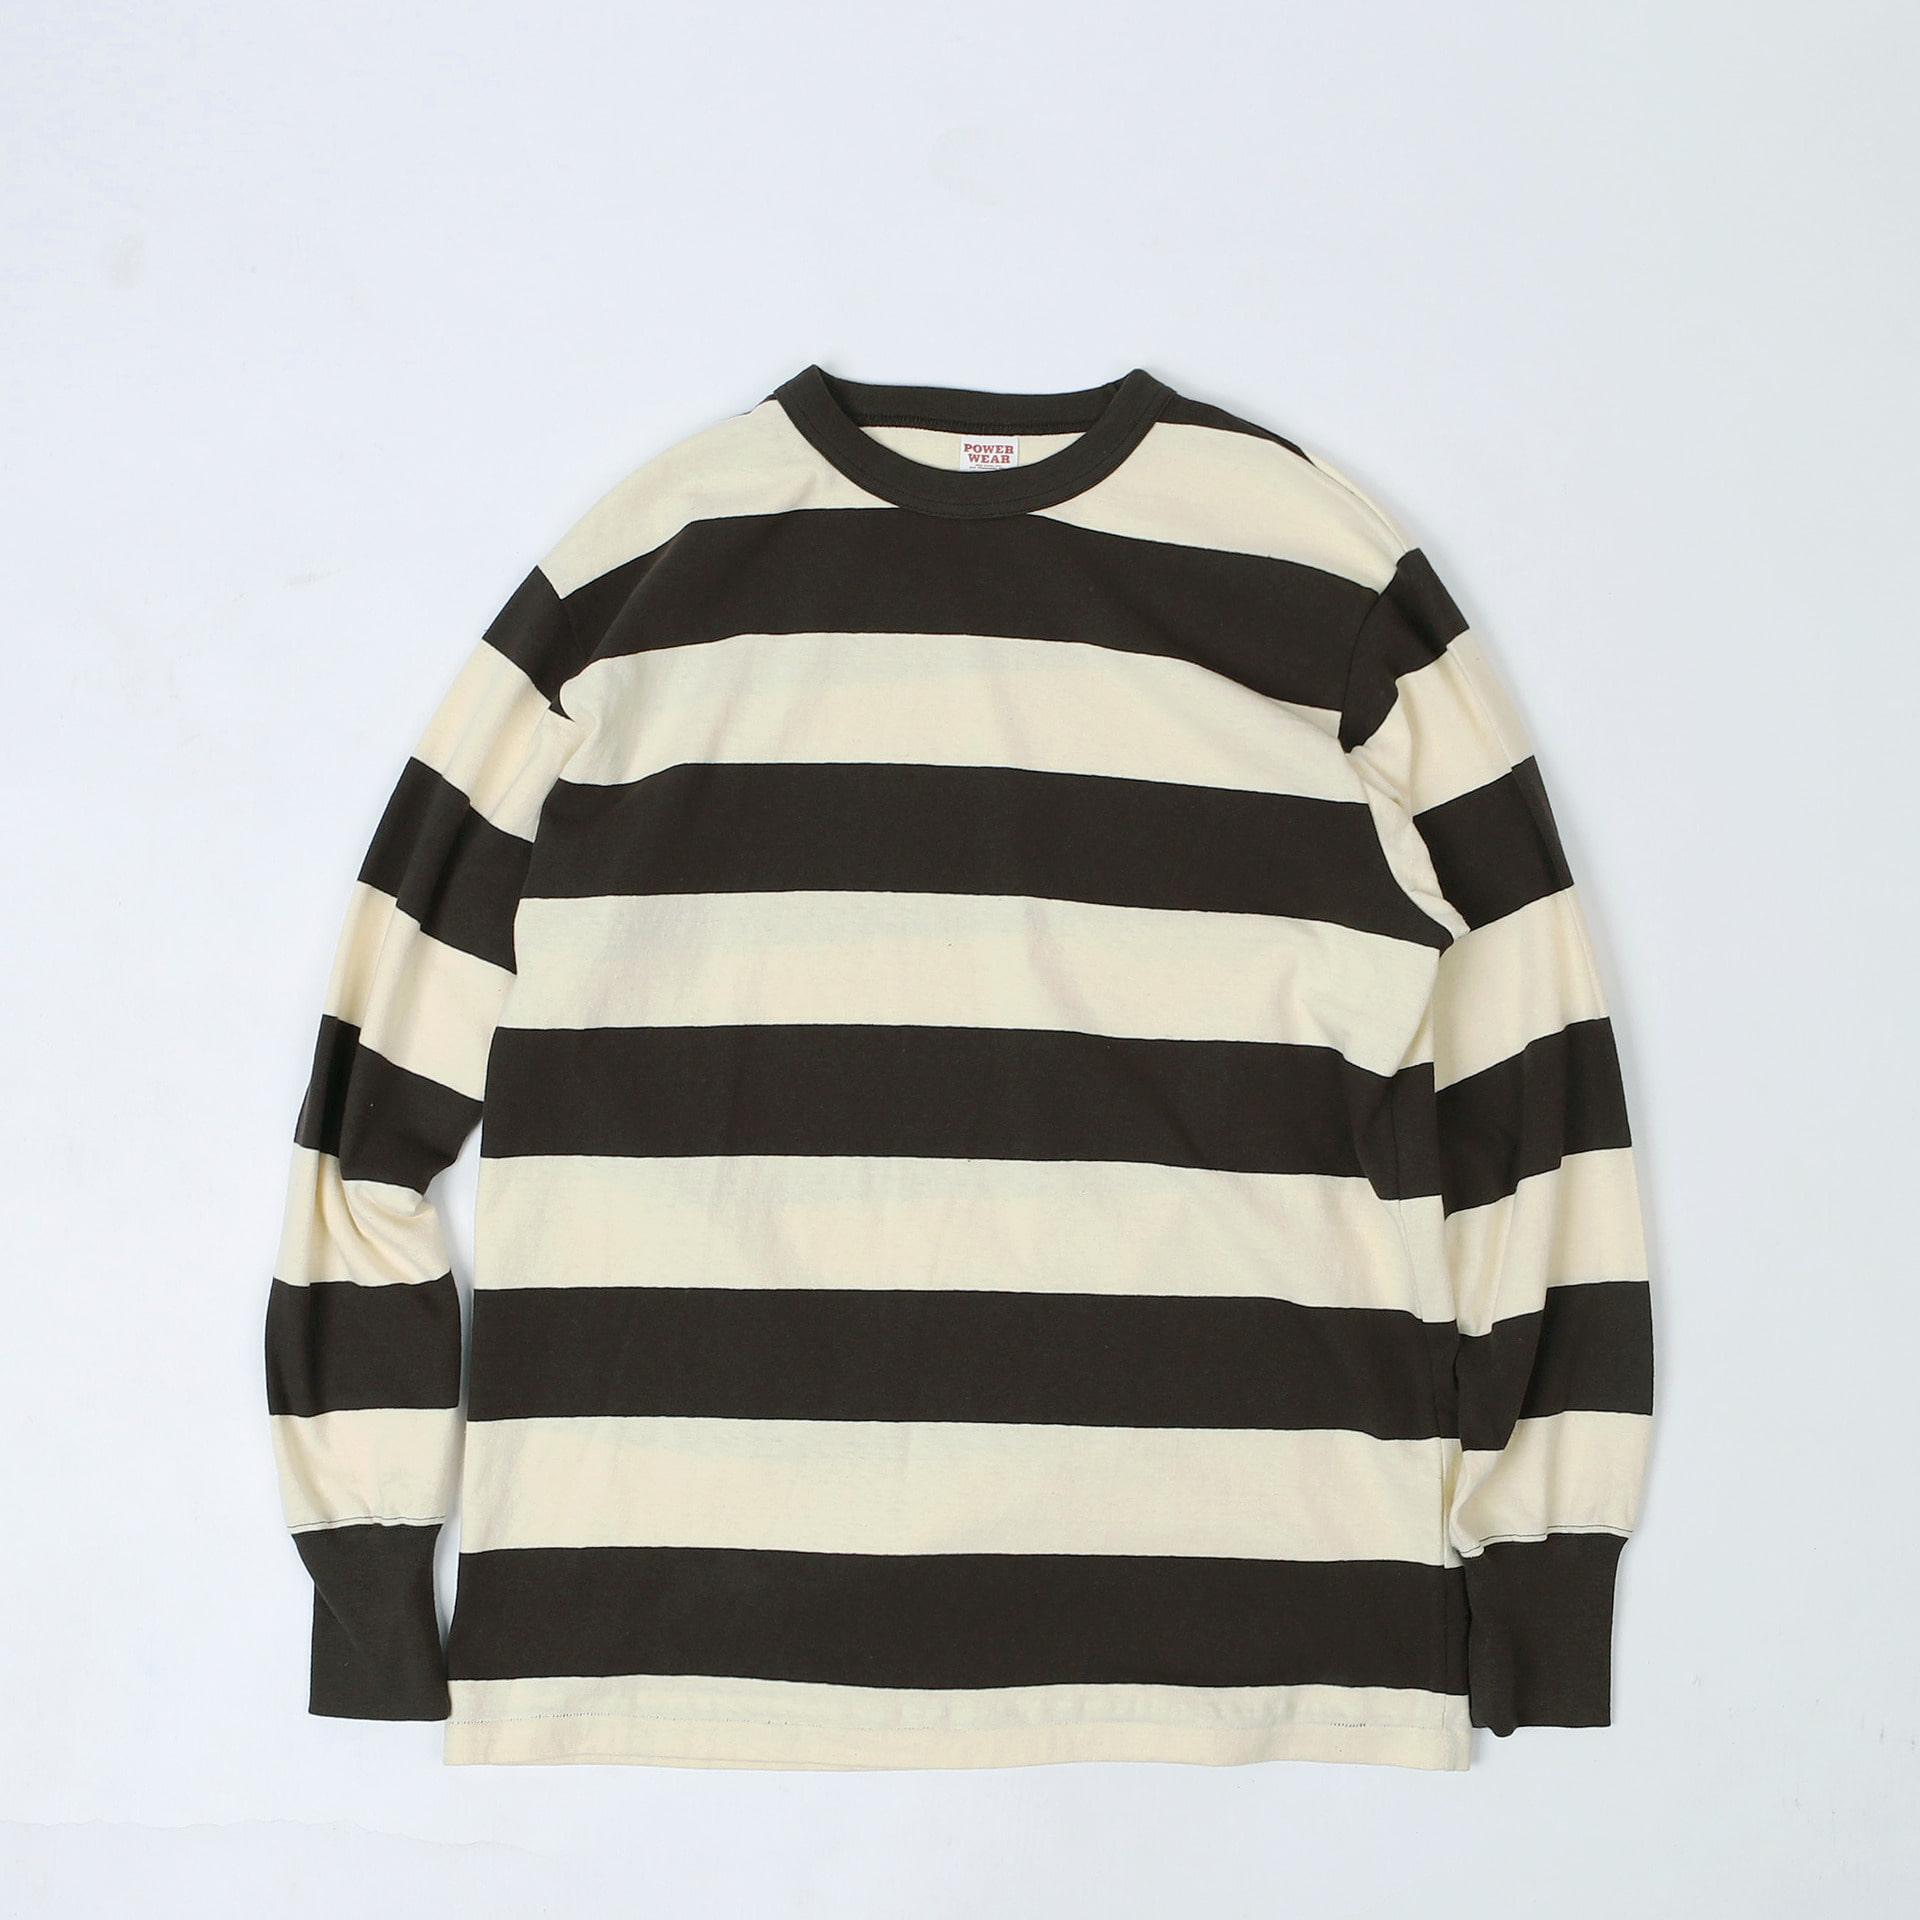 "[Power Wear]Long Sleeve T-Shirt""HORIZONTAL STRIPED""(Dry Cream × Chacoal Black)"